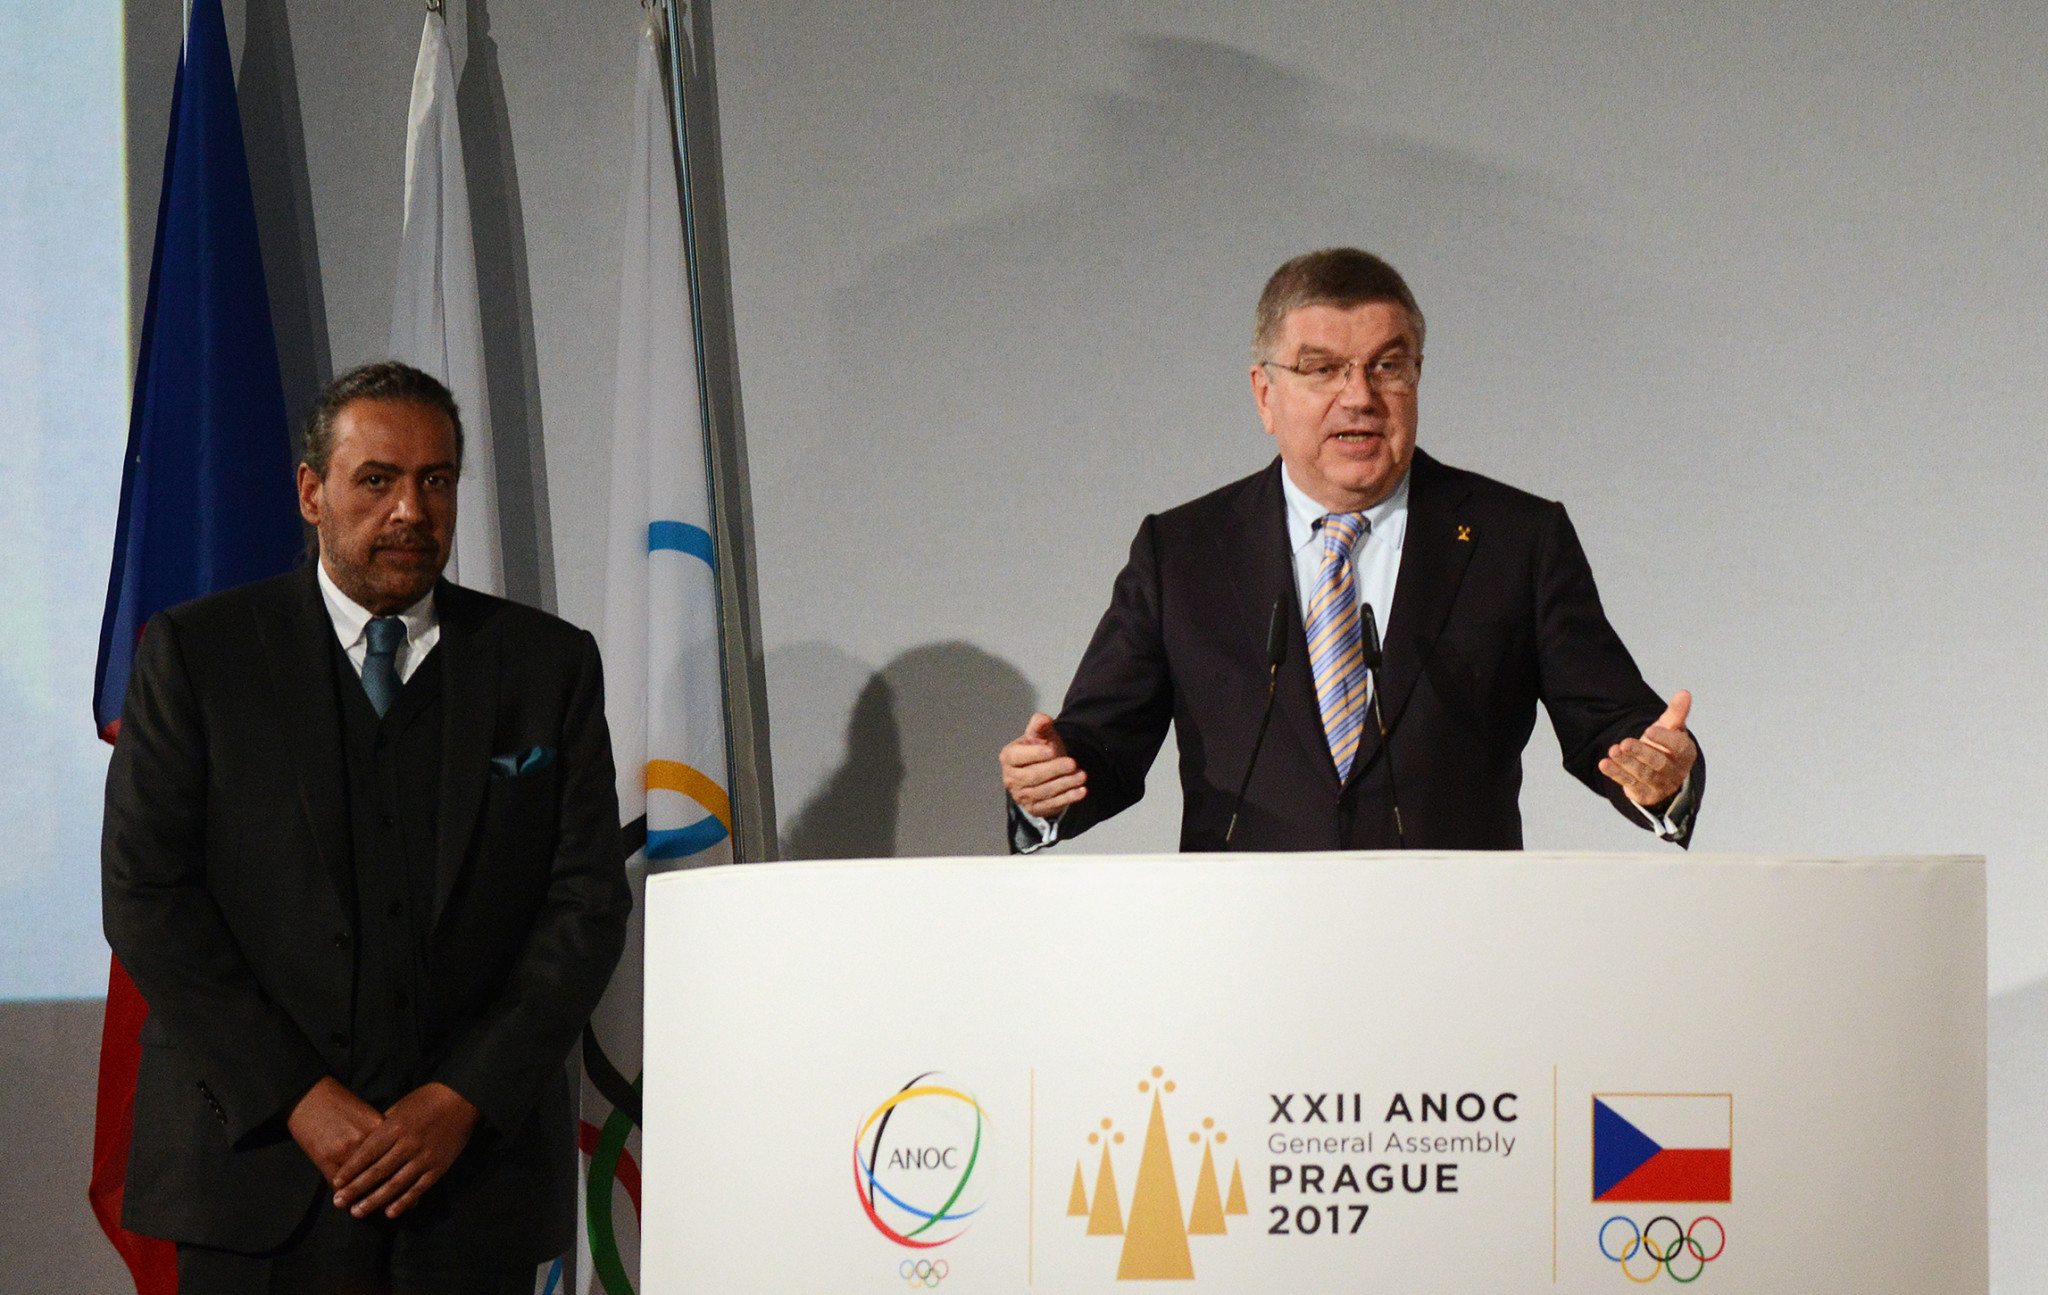 IOC President Thomas Bach, right, and ANOC counterpart Sheikh Ahmad Al-Fahad Al-Sabah are each attending the ANOC General Assembly ©Getty Images